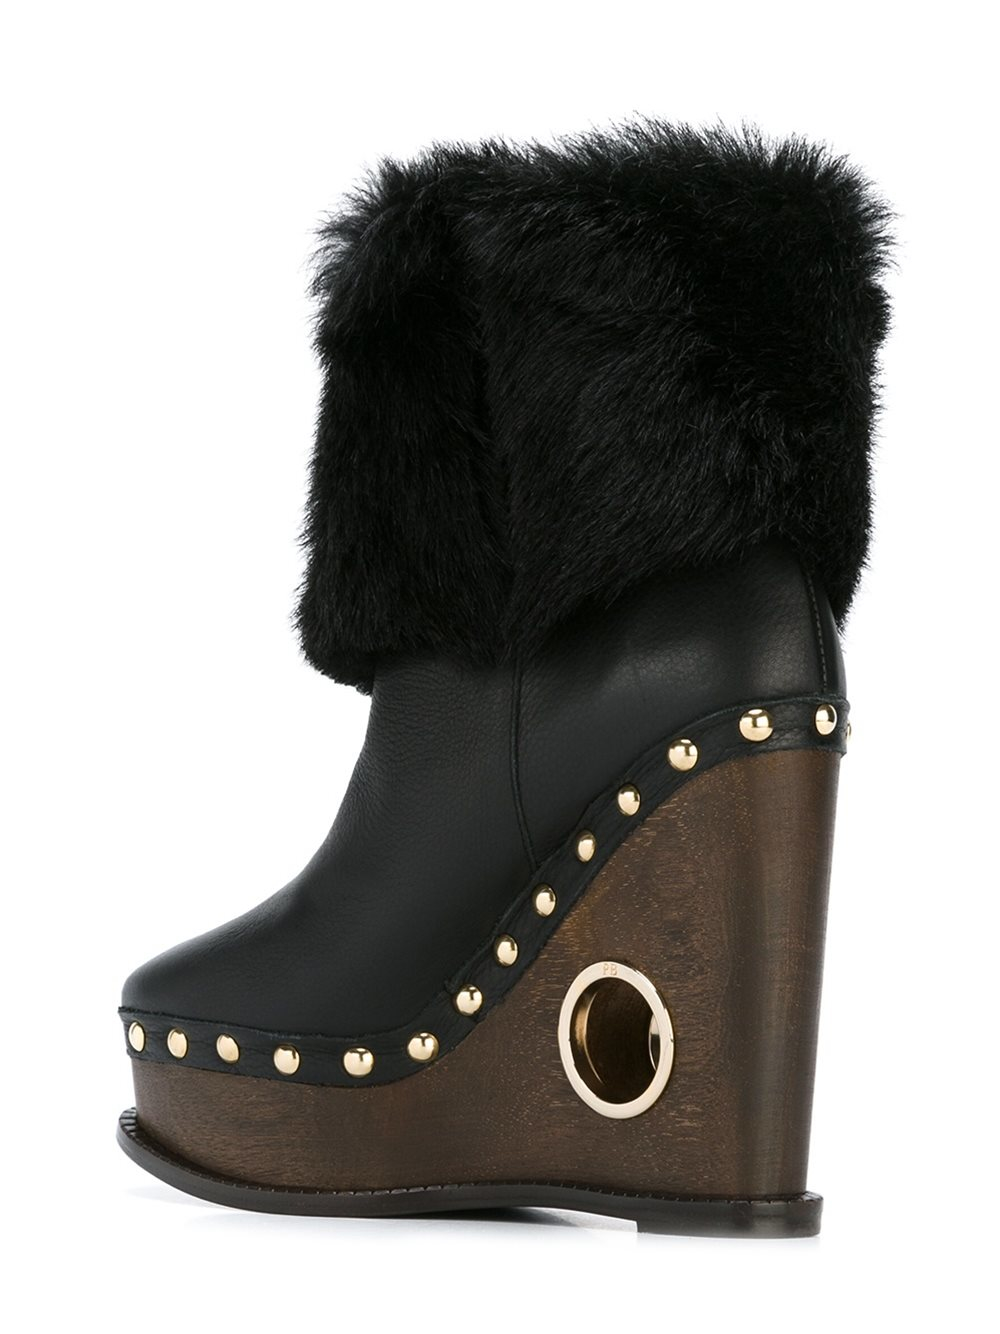 Paloma Barceló Leather Paloma Barceló 'valencia' Boots in Black